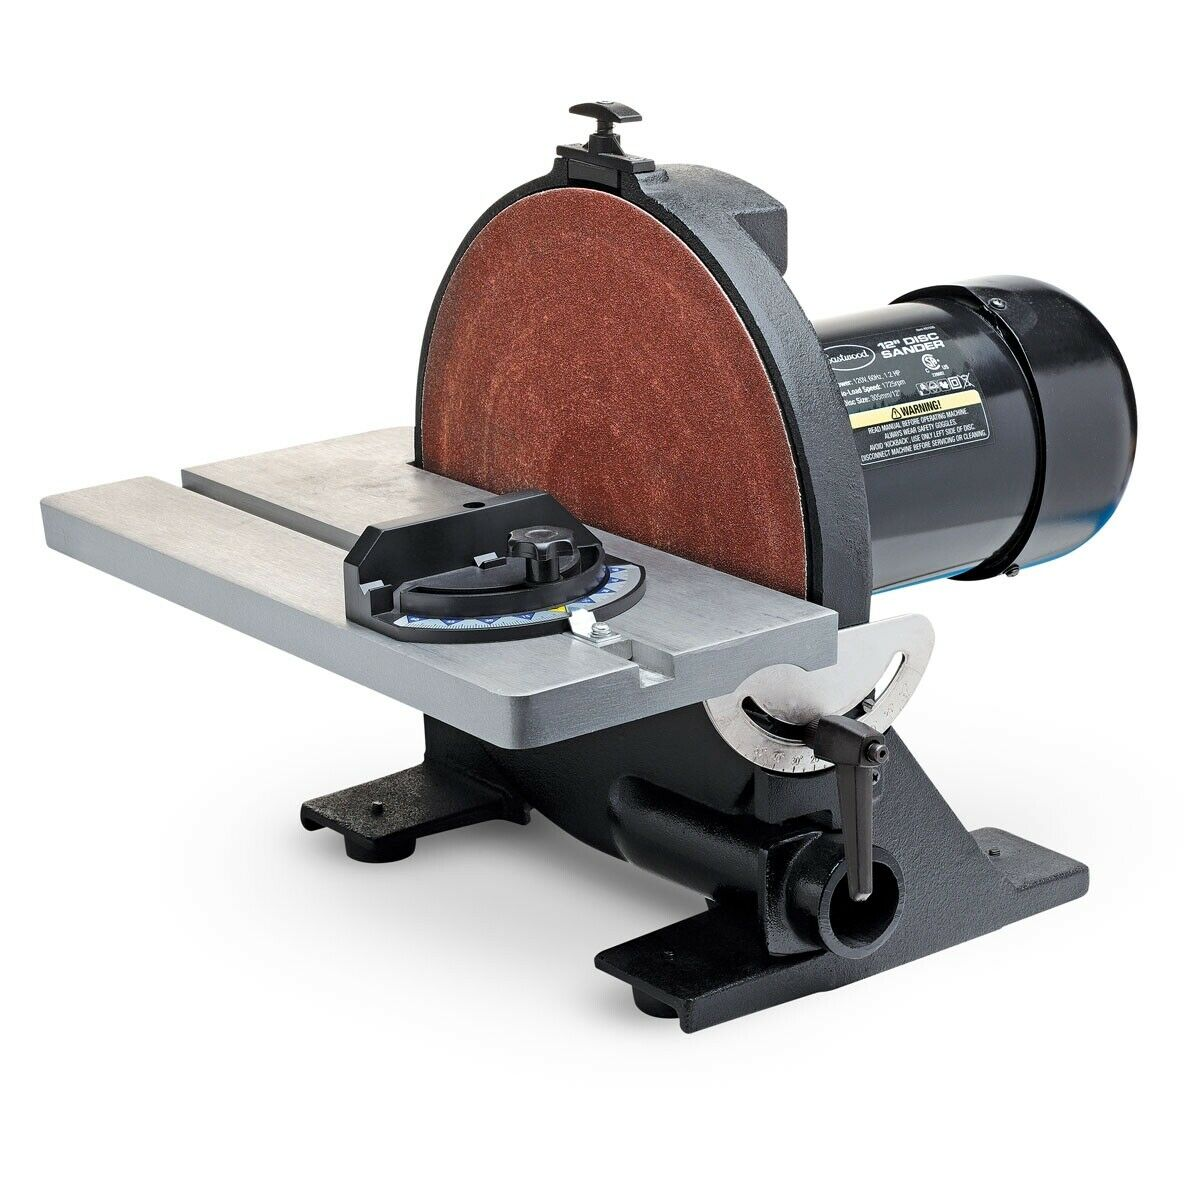 Eastwood 12 inch Heavy Duty Disc Sander Vibration Free with Miter Gauge. Buy it now for 293.99